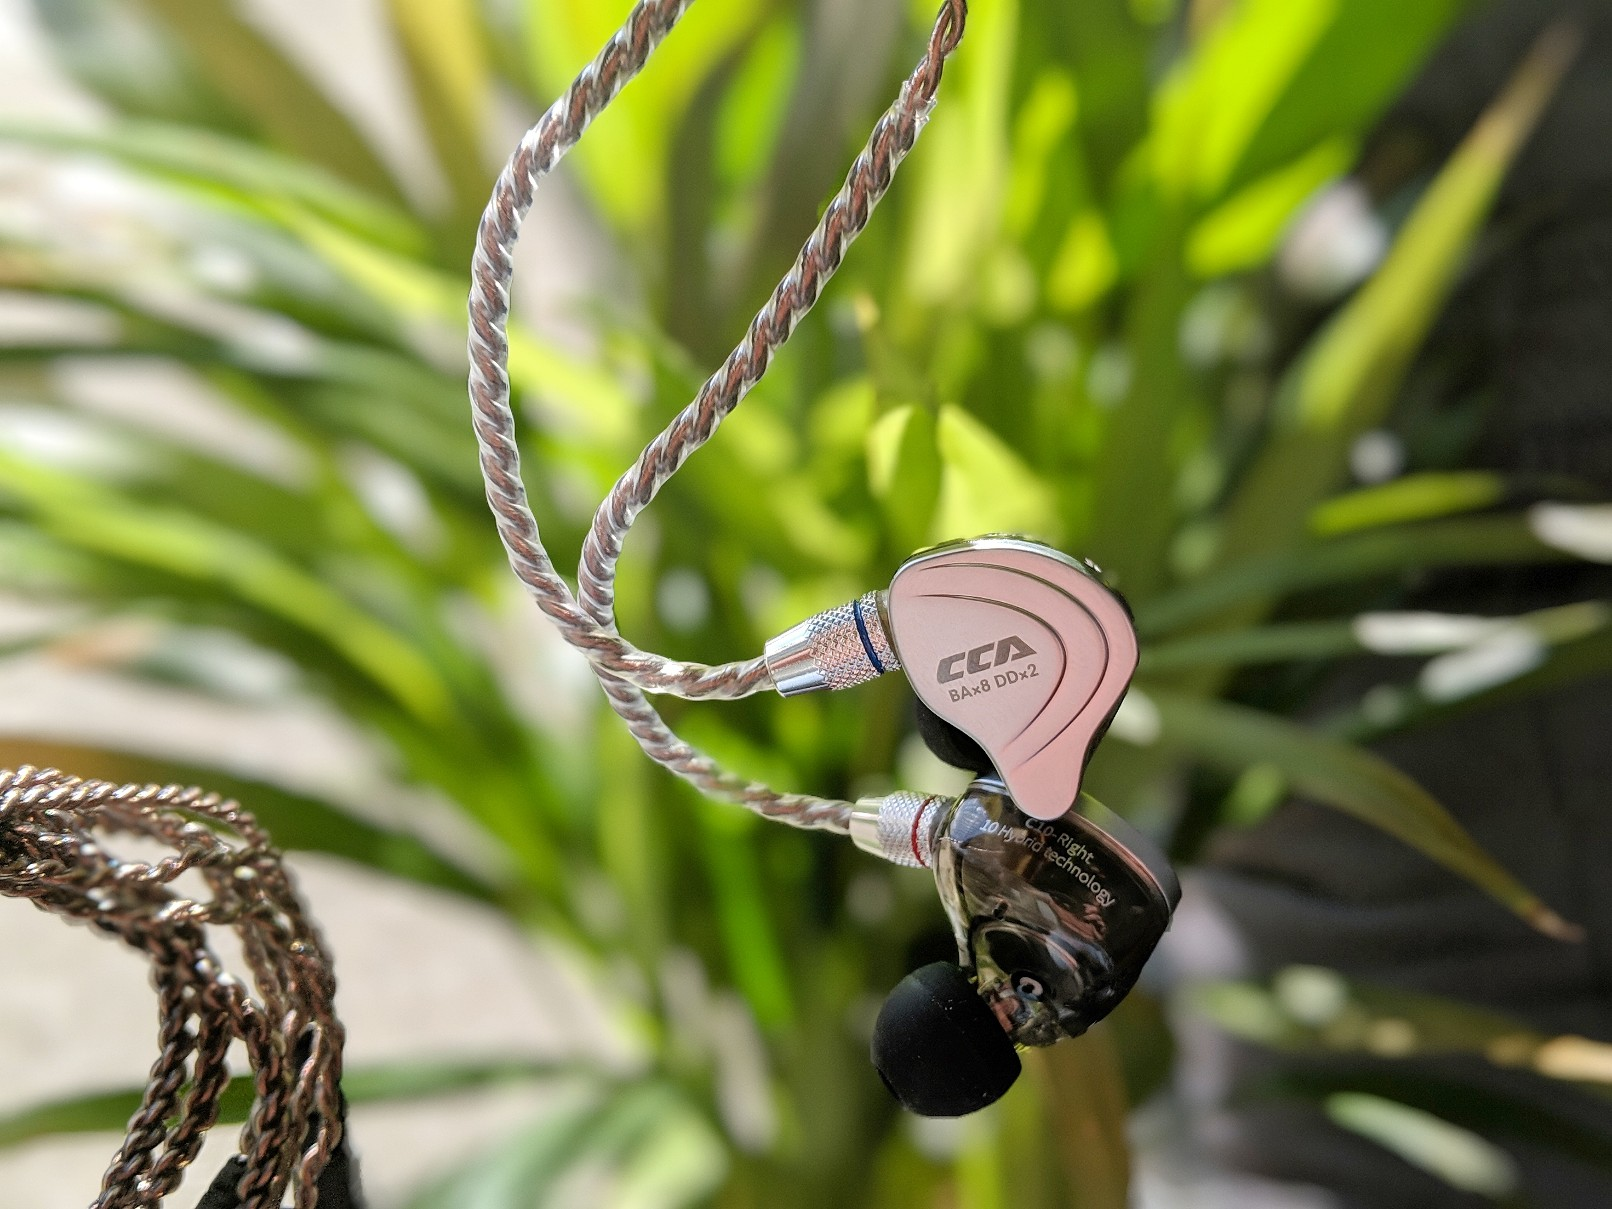 CCA C10 Hybrid earphone review.